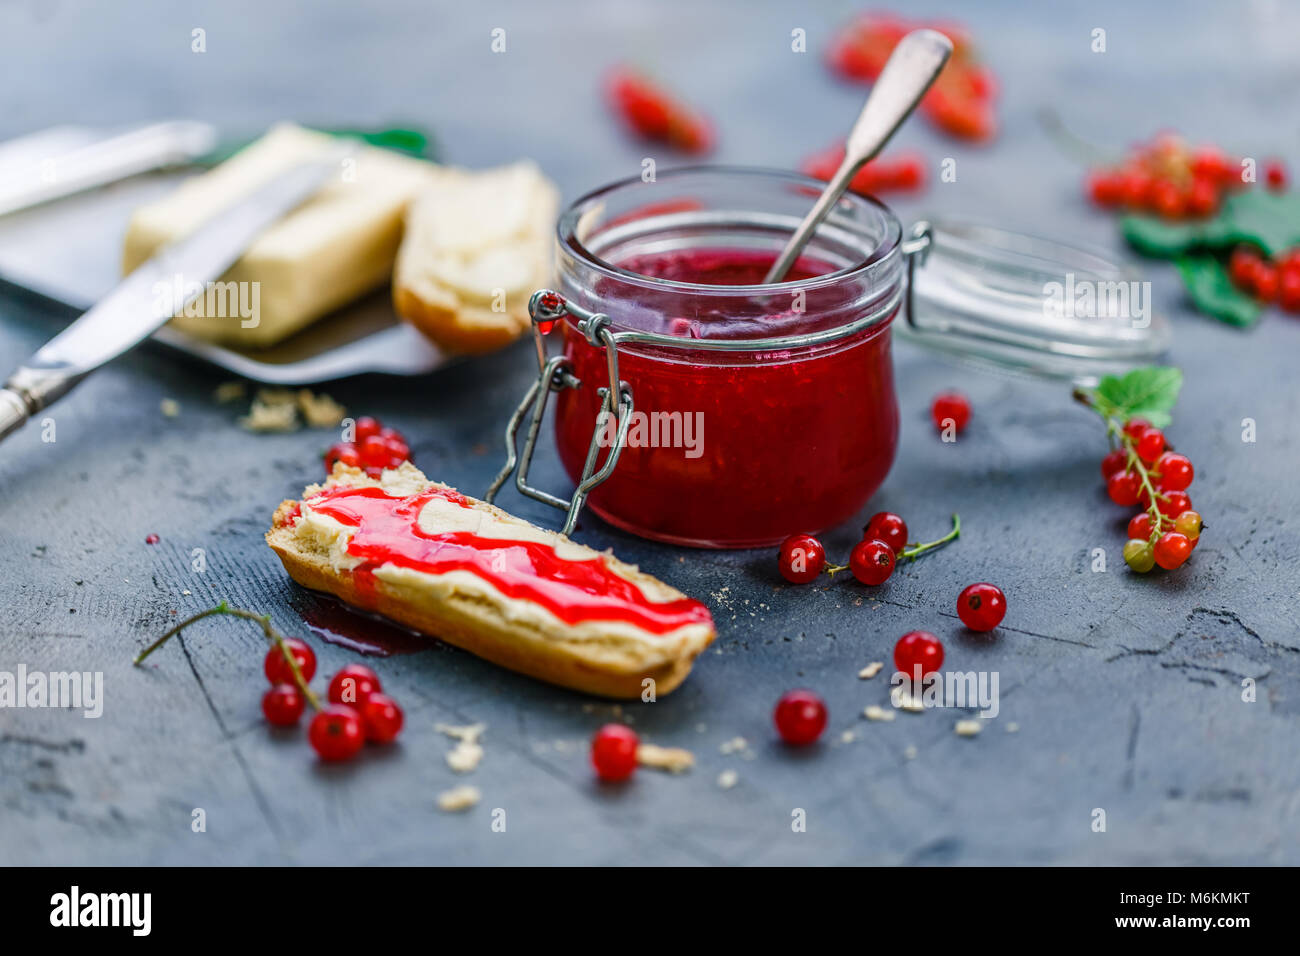 Tasty red currants jamwith brioche and butter. - Stock Image